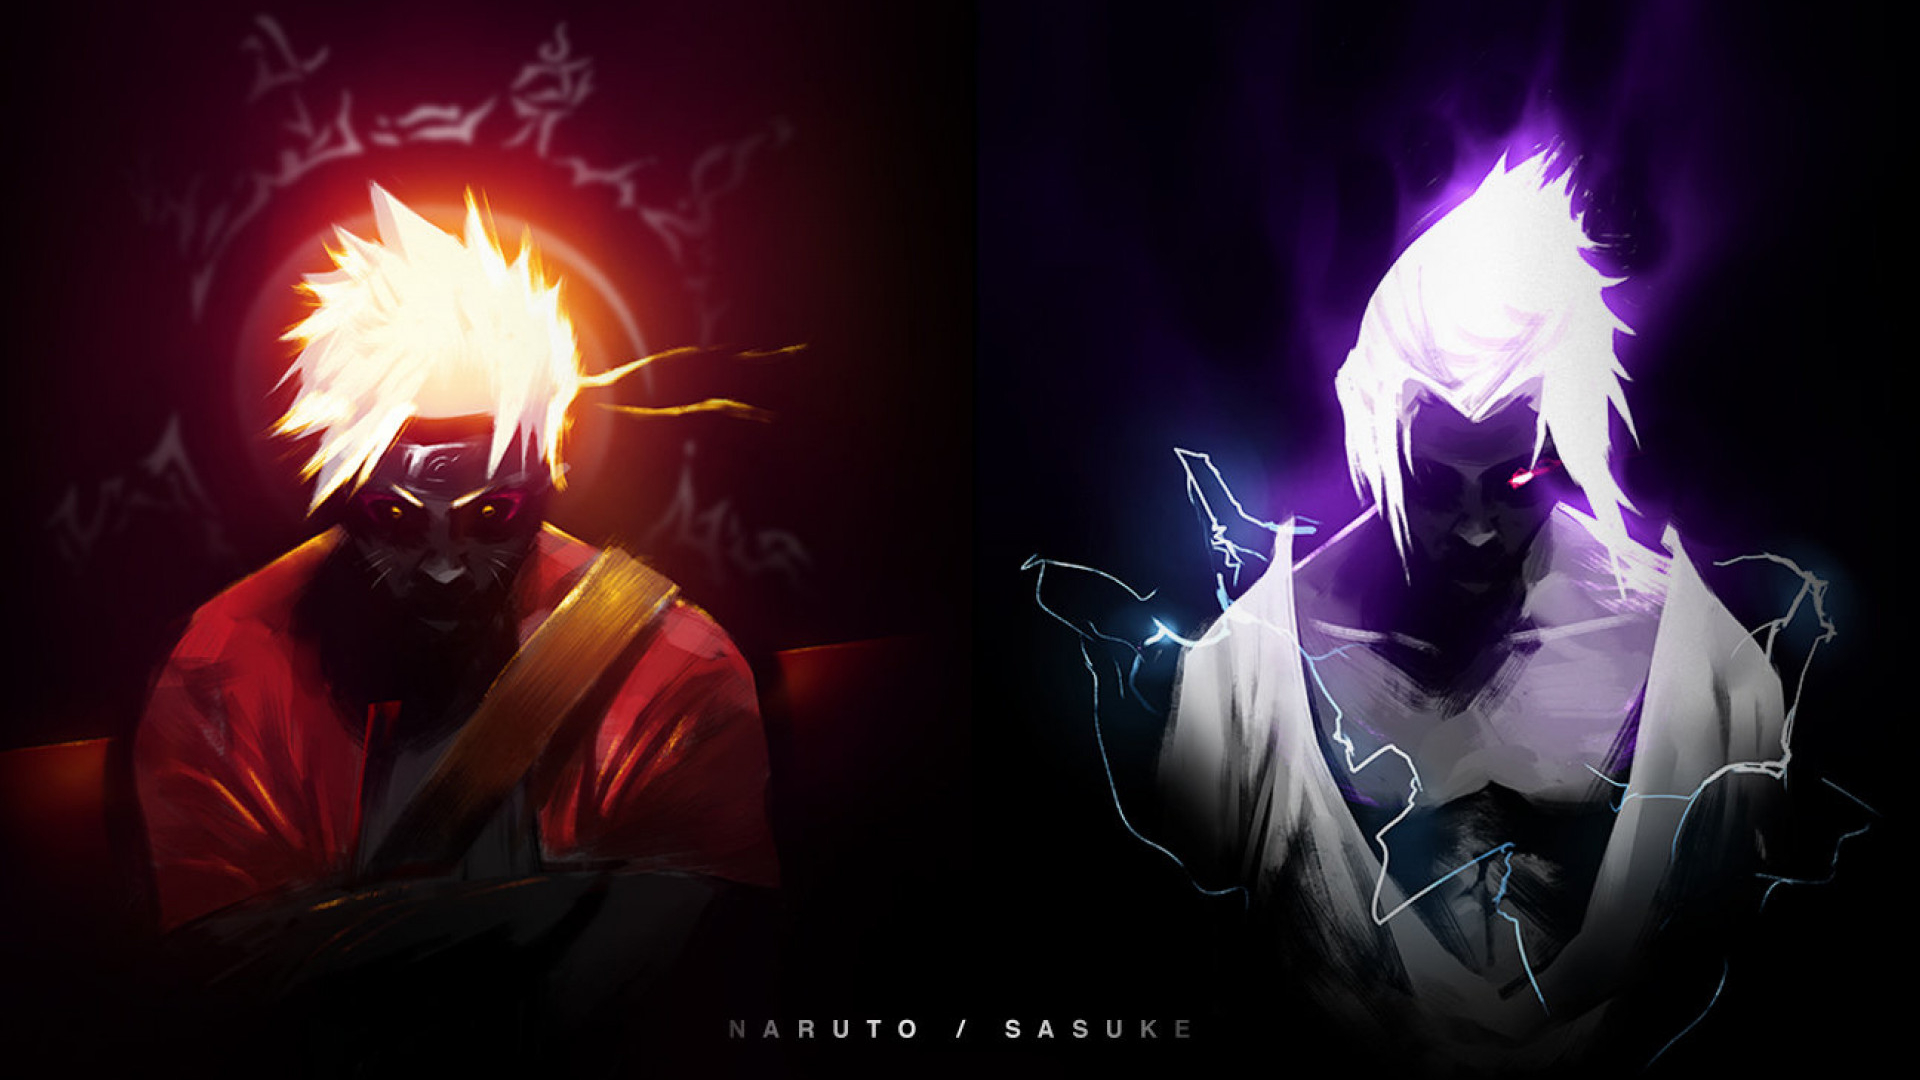 Free Download Hd Wallpaper Naruto Sage Mode And Sasuke Chidori